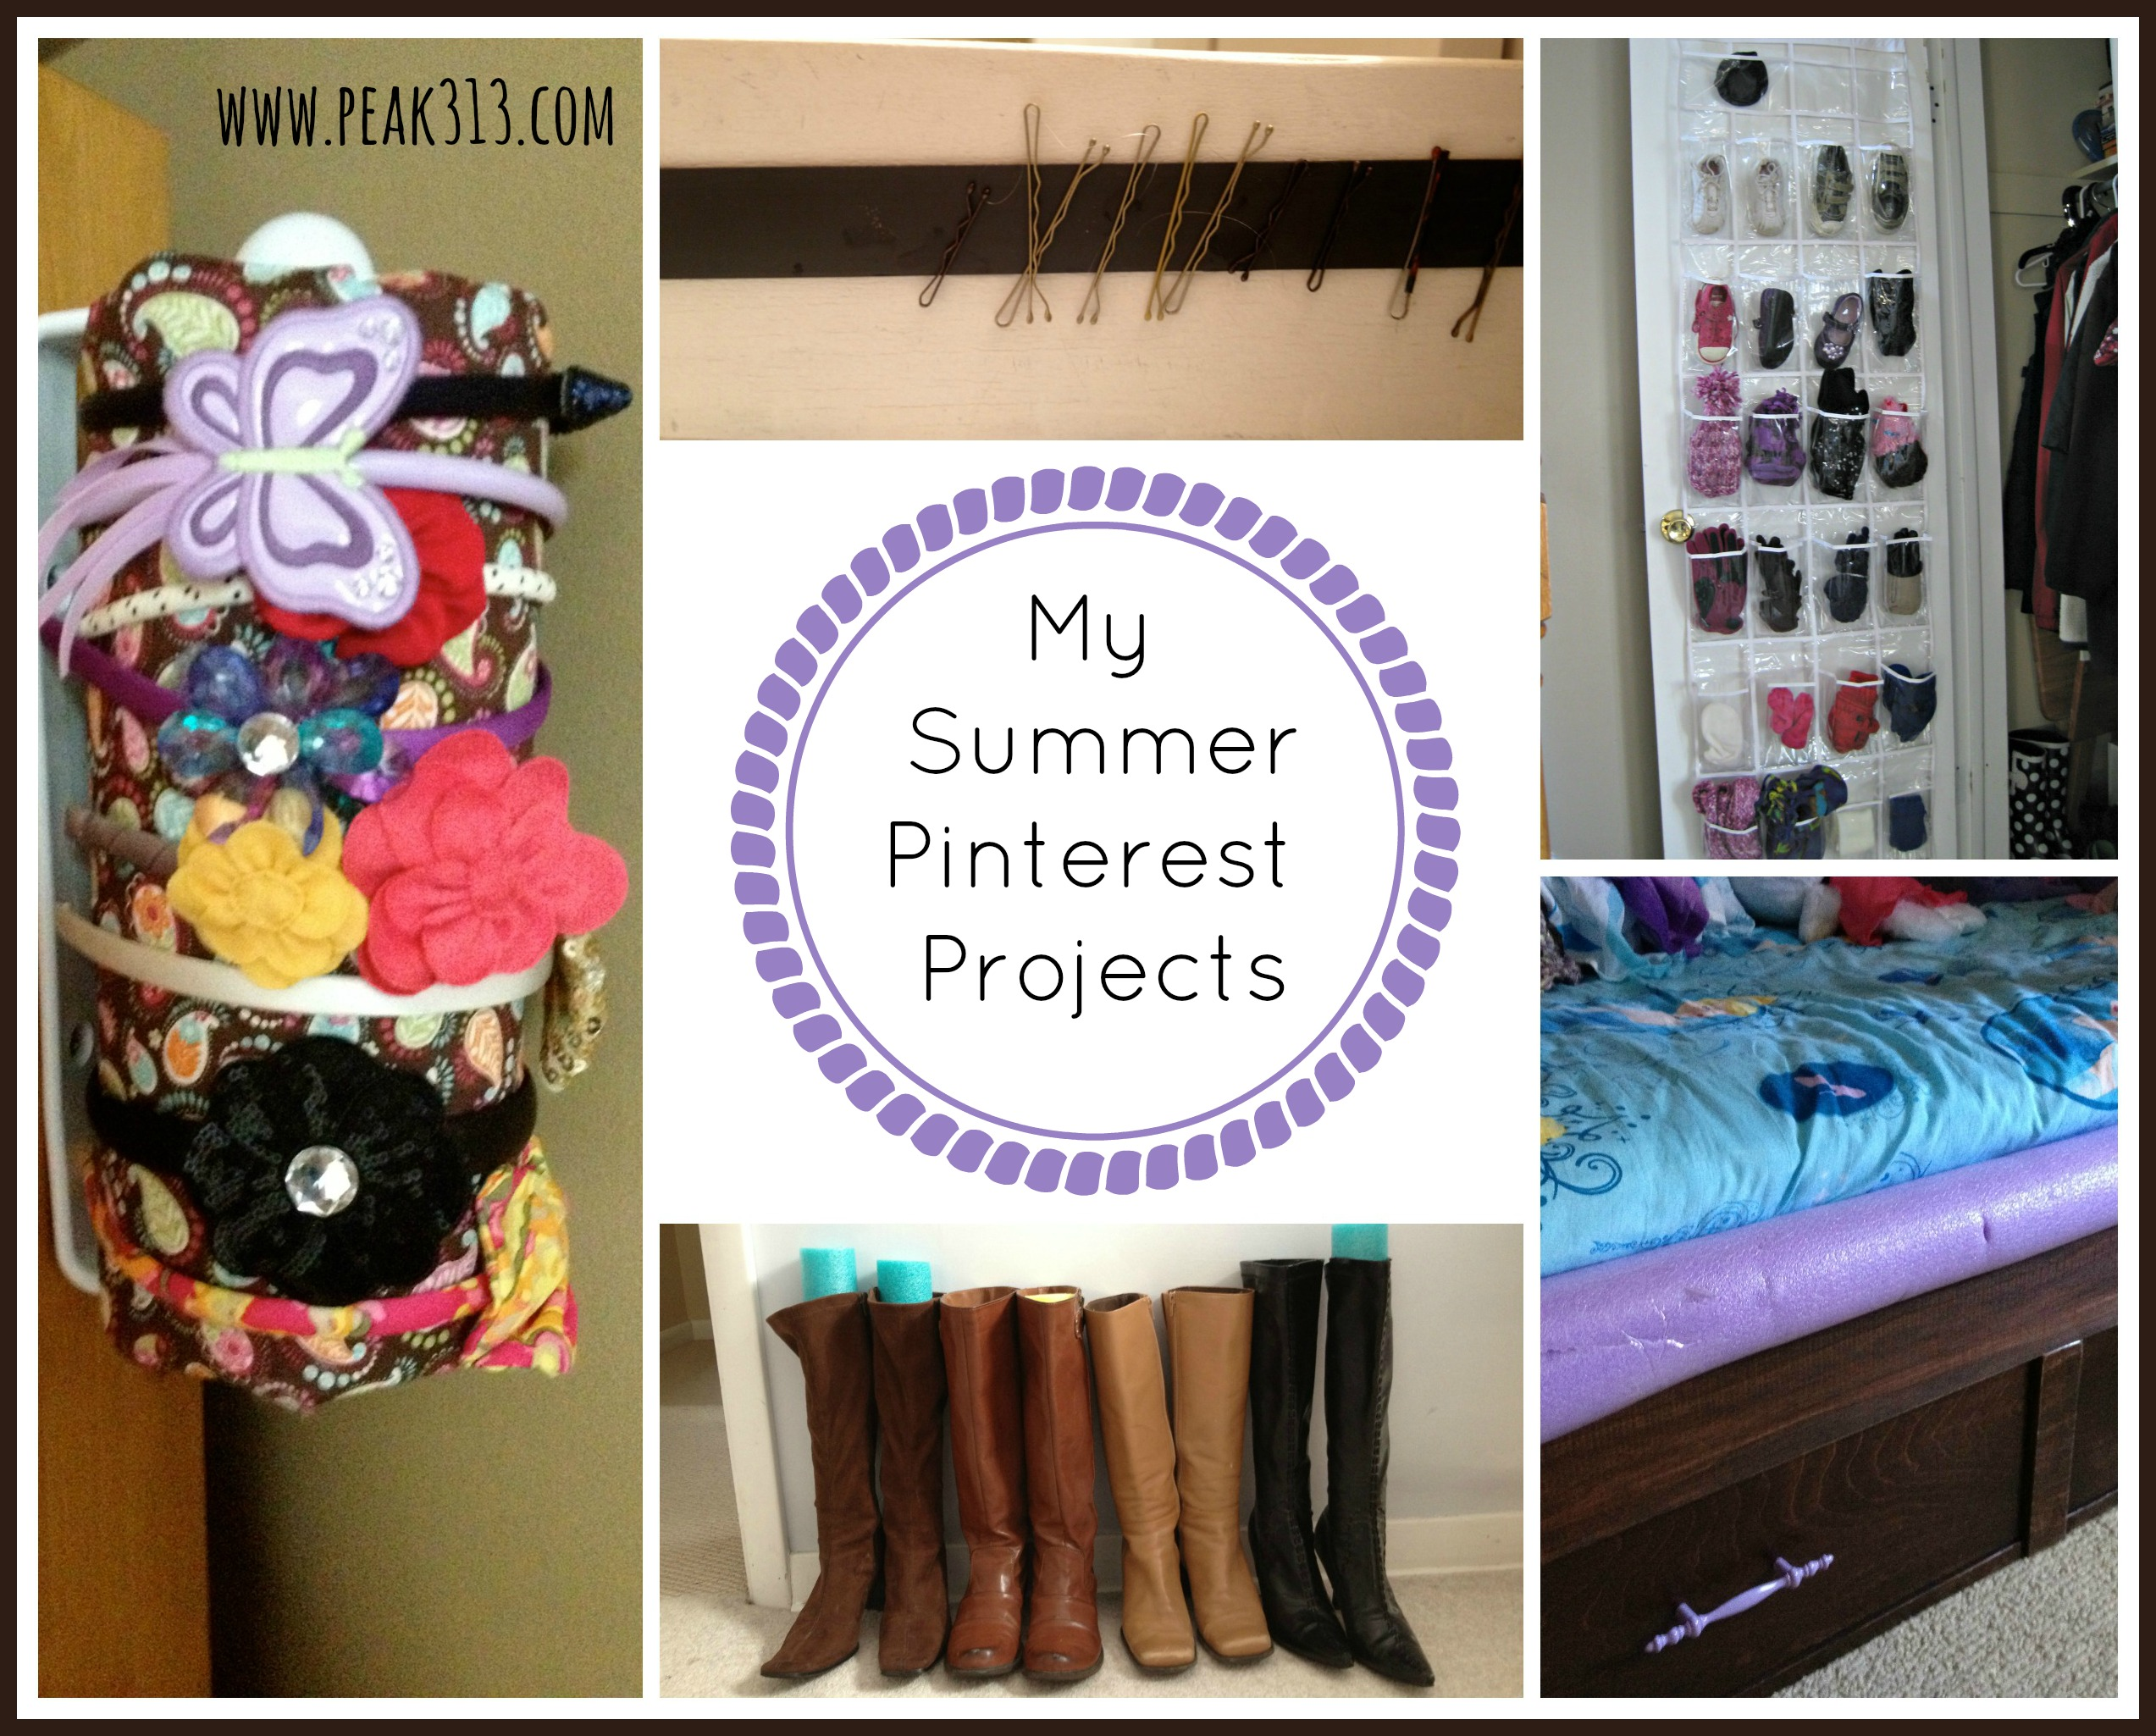 My Summer Pinterest Projects